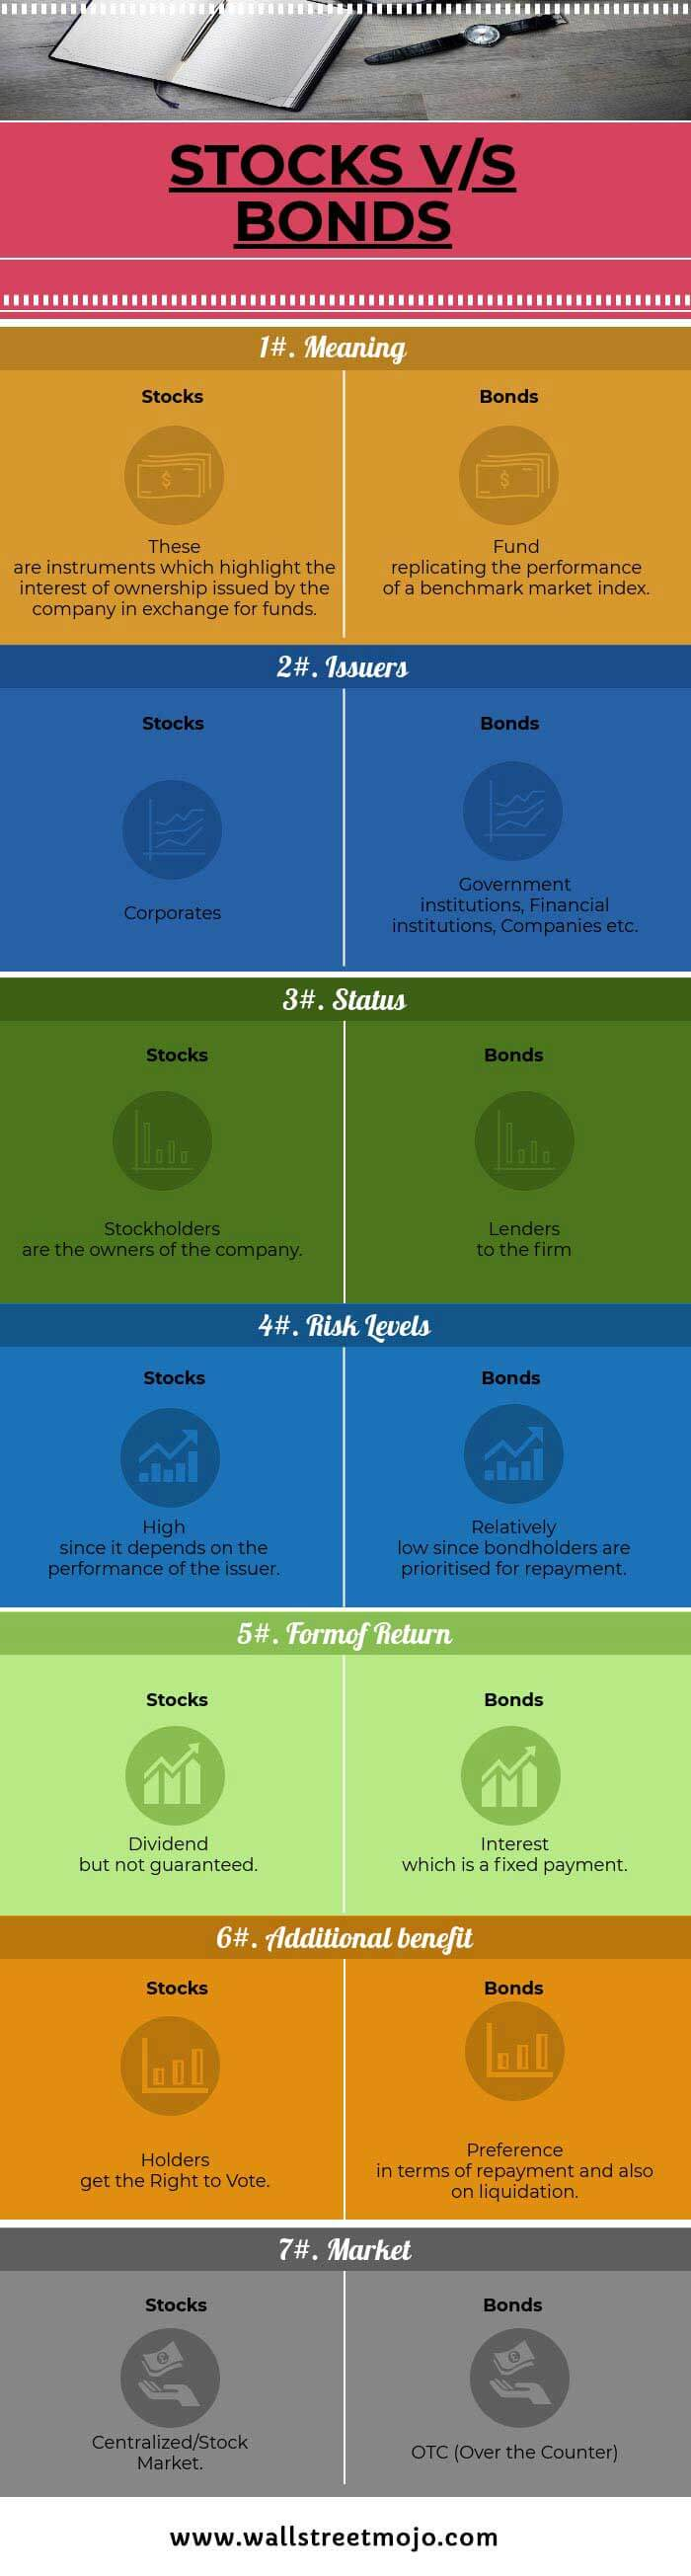 STOCKS-VS-BONDS